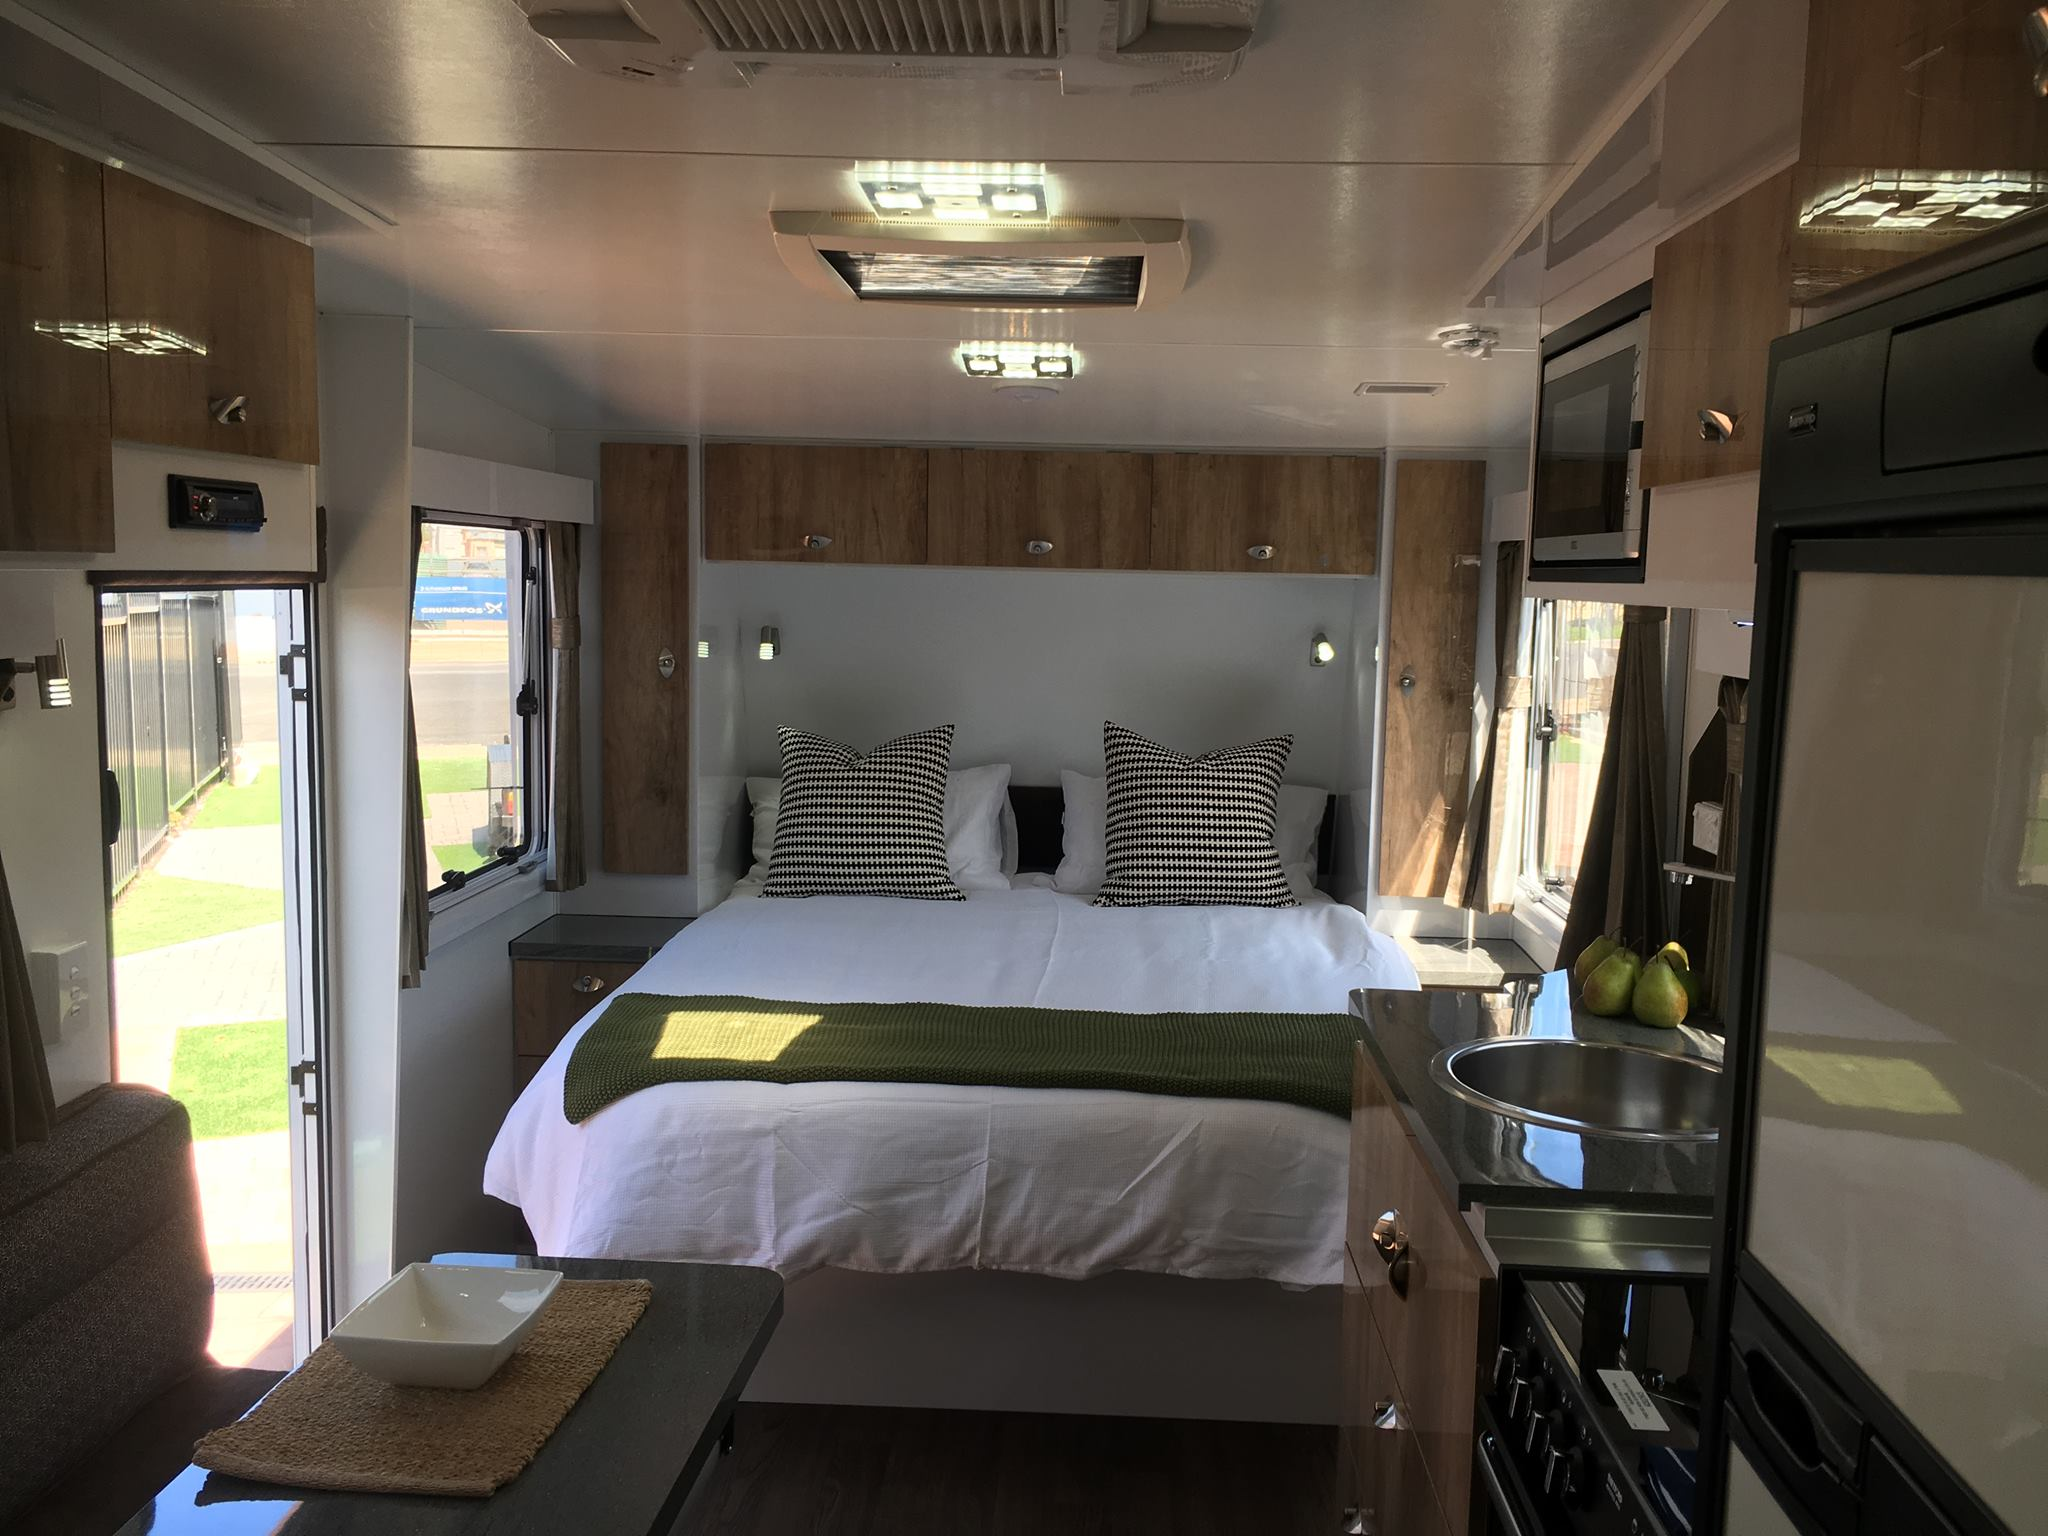 The best of Inside and Outside - Caravan Industry News